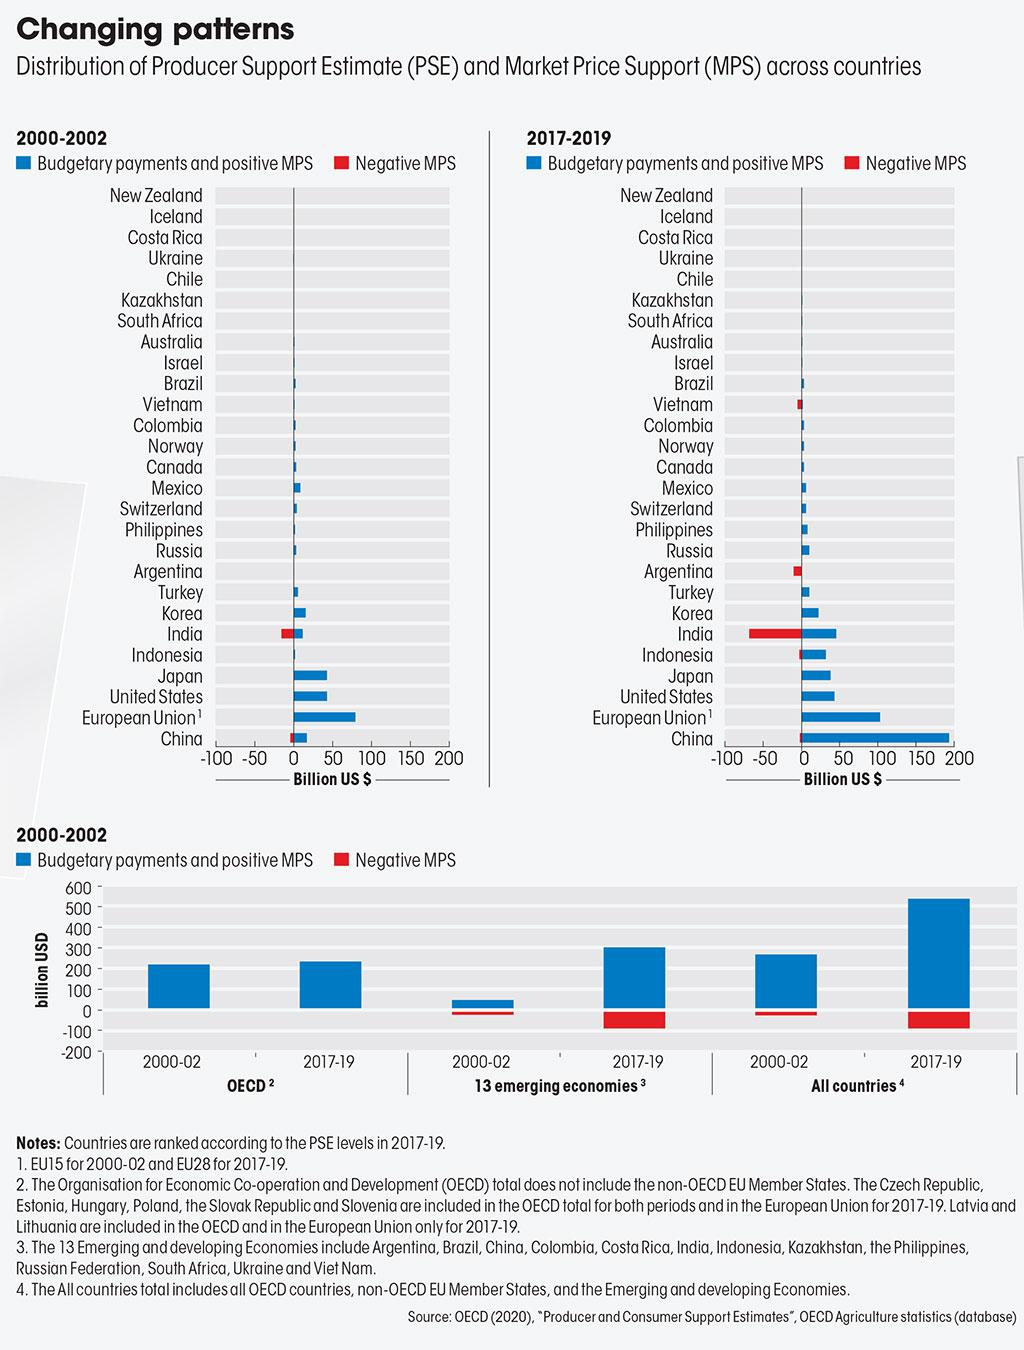 """Source: OECD (2020), """"Producer and Consumer Support Estimates"""", OECD Agriculture statistics (database)"""